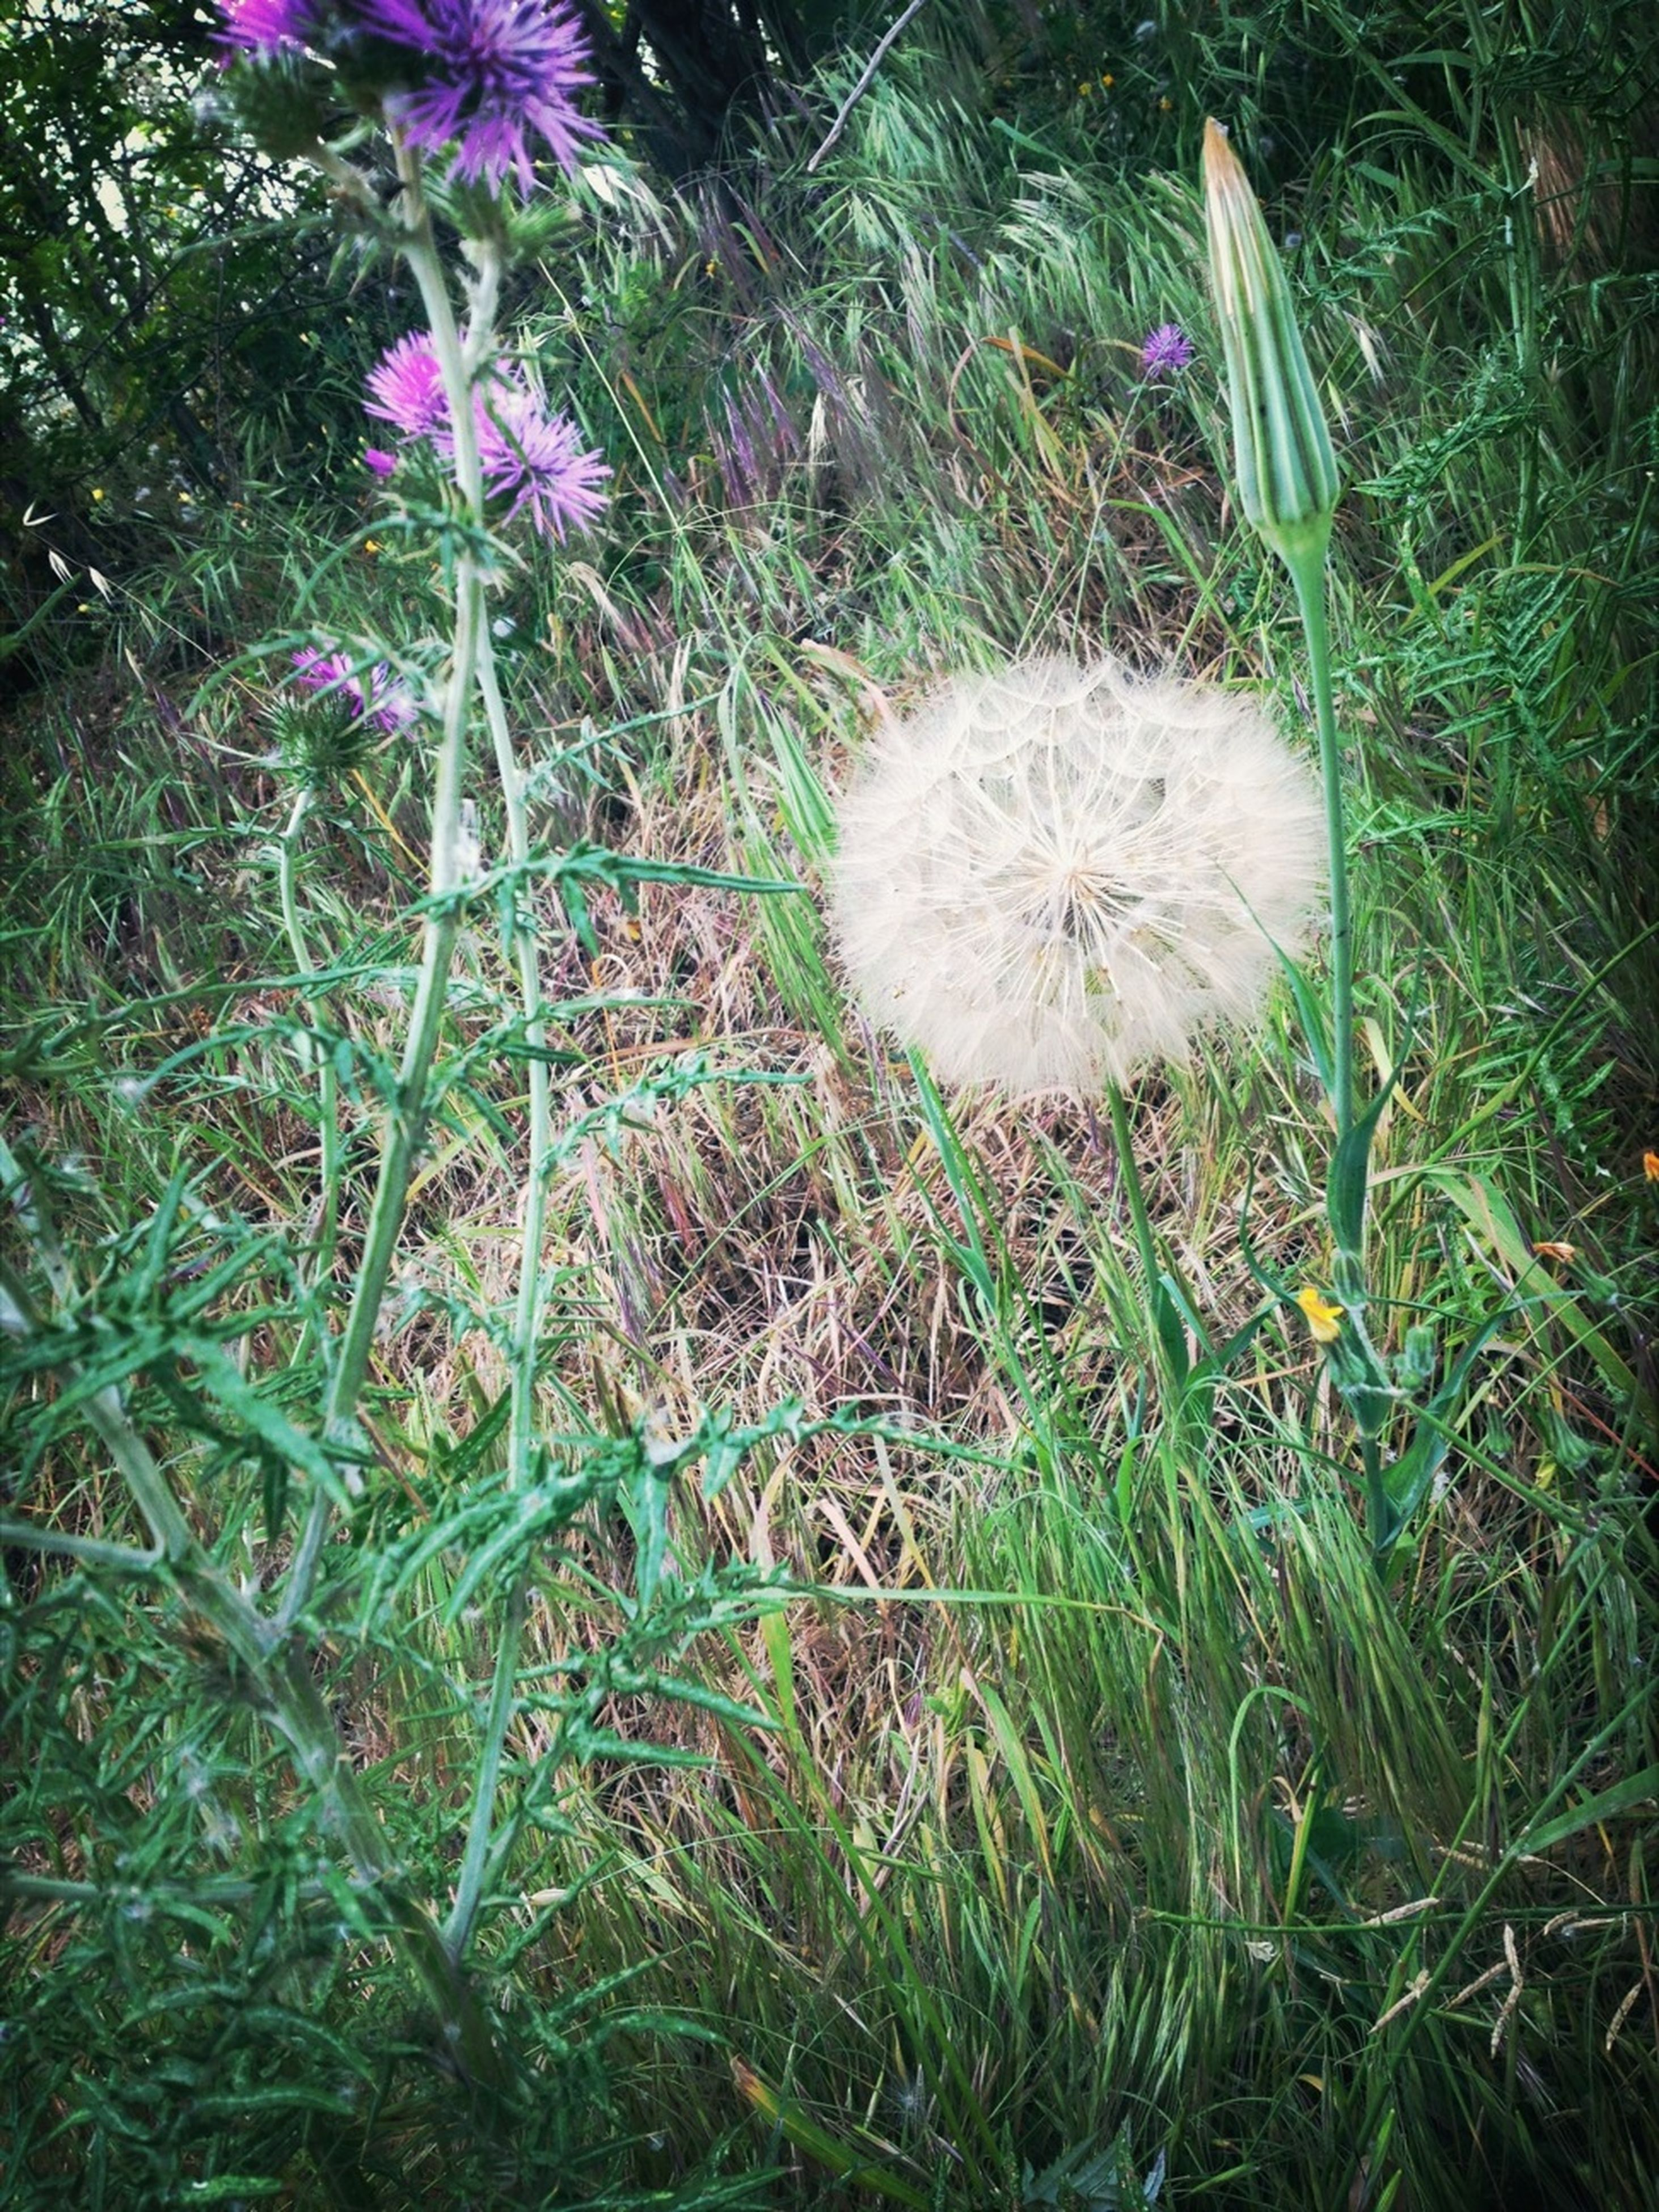 flower, grass, growth, fragility, plant, field, freshness, beauty in nature, nature, flower head, high angle view, green color, white color, petal, dandelion, blooming, grassy, wildflower, close-up, outdoors